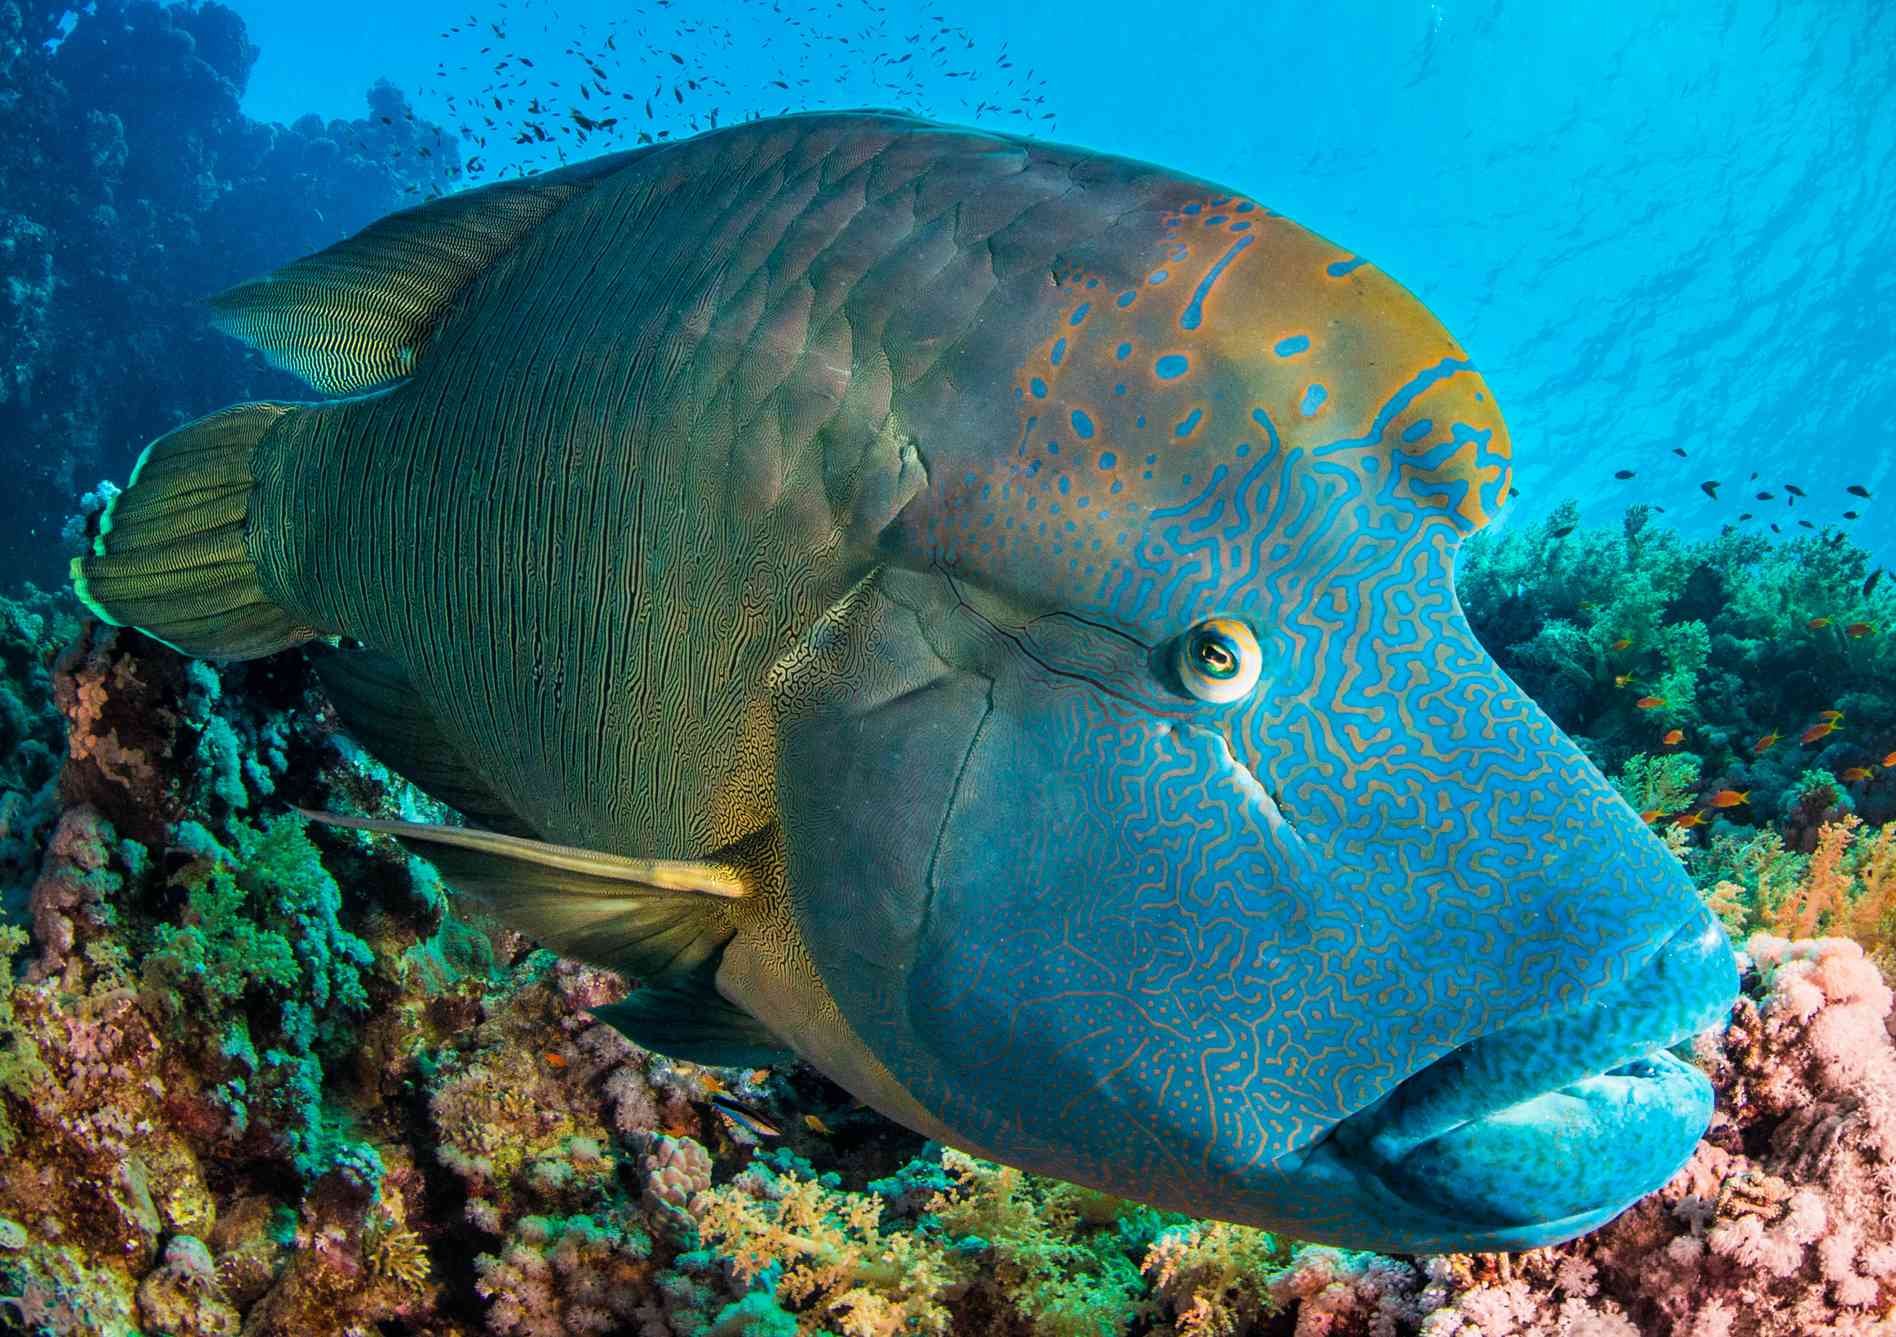 A blue-faced humphead wrasse on a colorful coral reef.